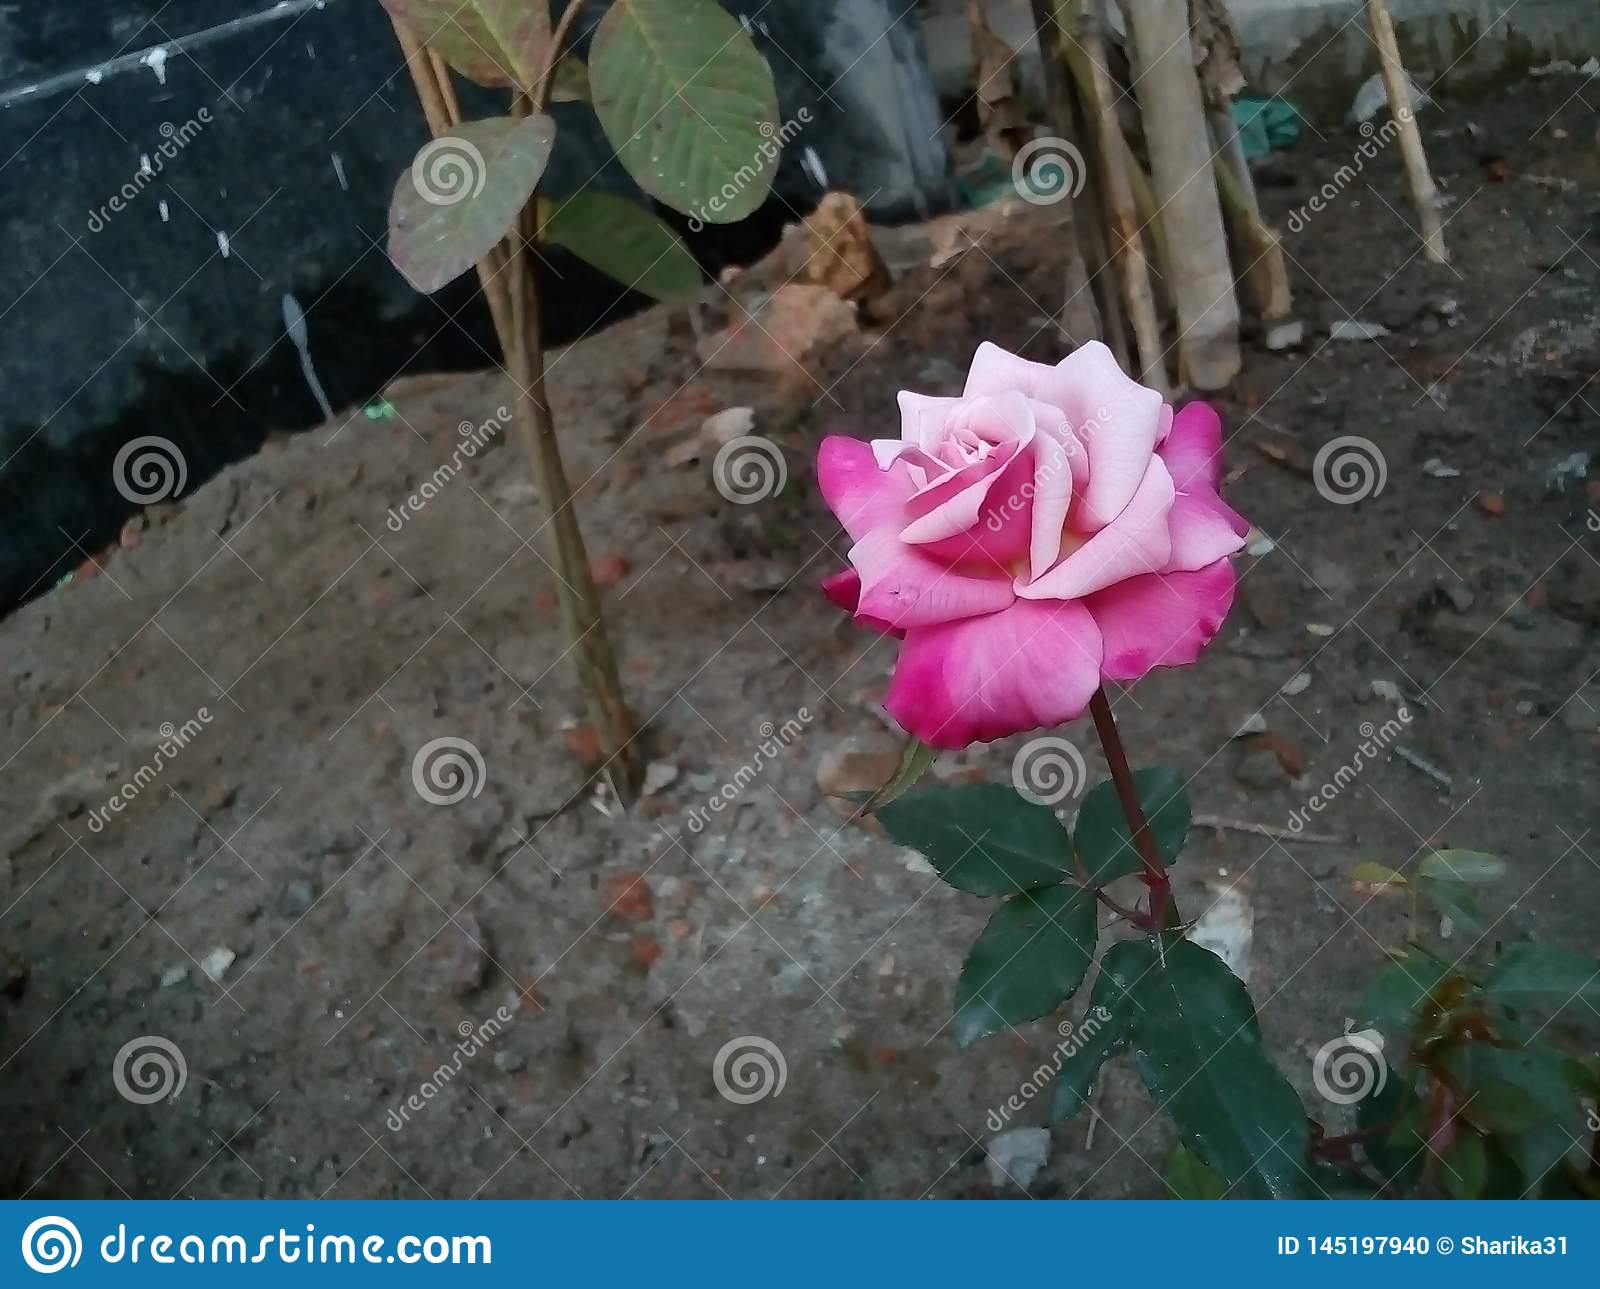 The rose is beautiful  because love is pure our life